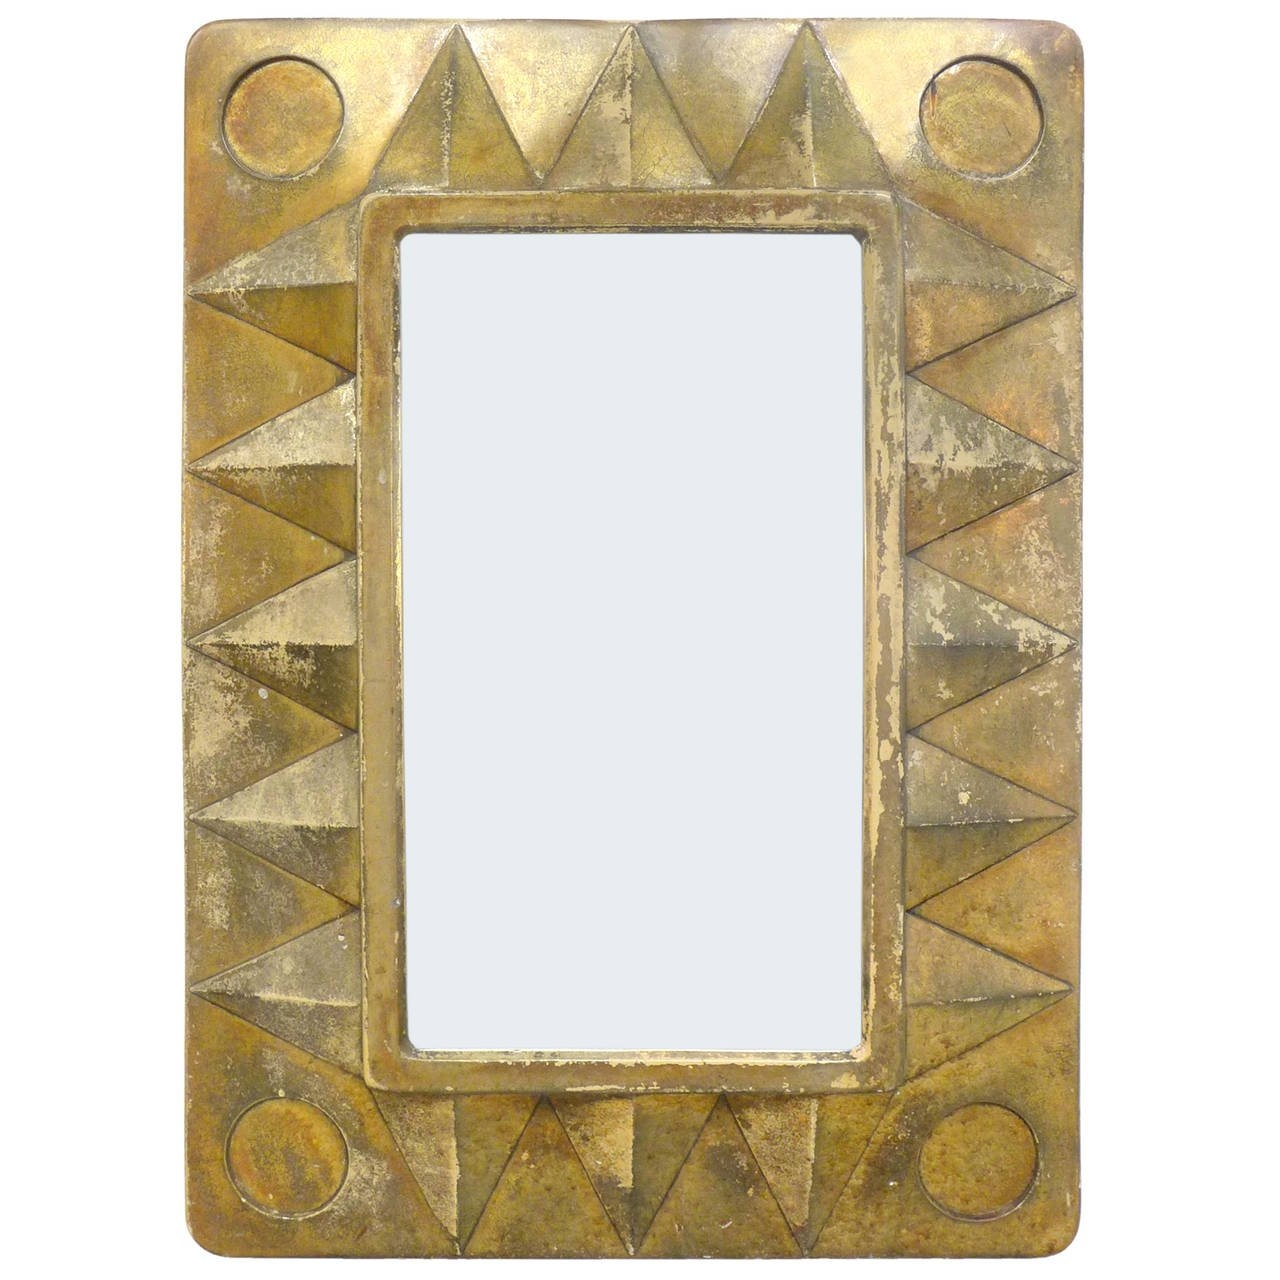 Gilt Geometric Framed Mirror At 1stdibs Inside Gilt Framed Mirror (Image 8 of 15)